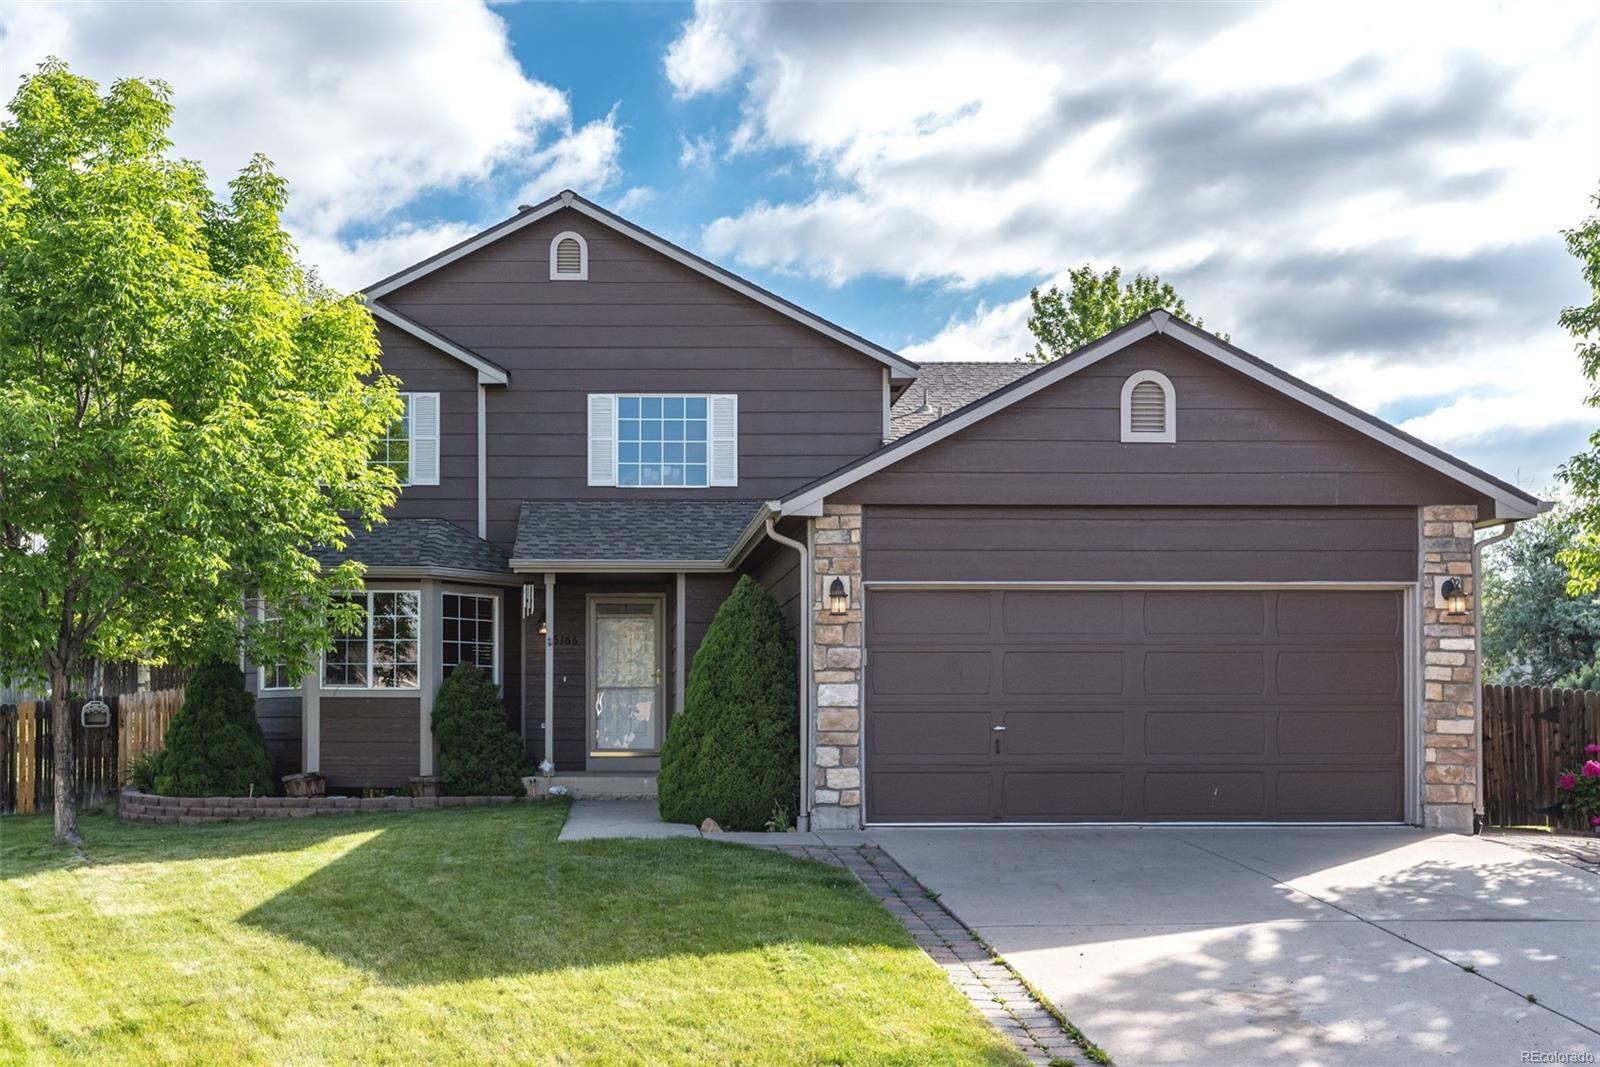 Welcome home to 5166 S. Routt Court in desirable Sunrise Creek!